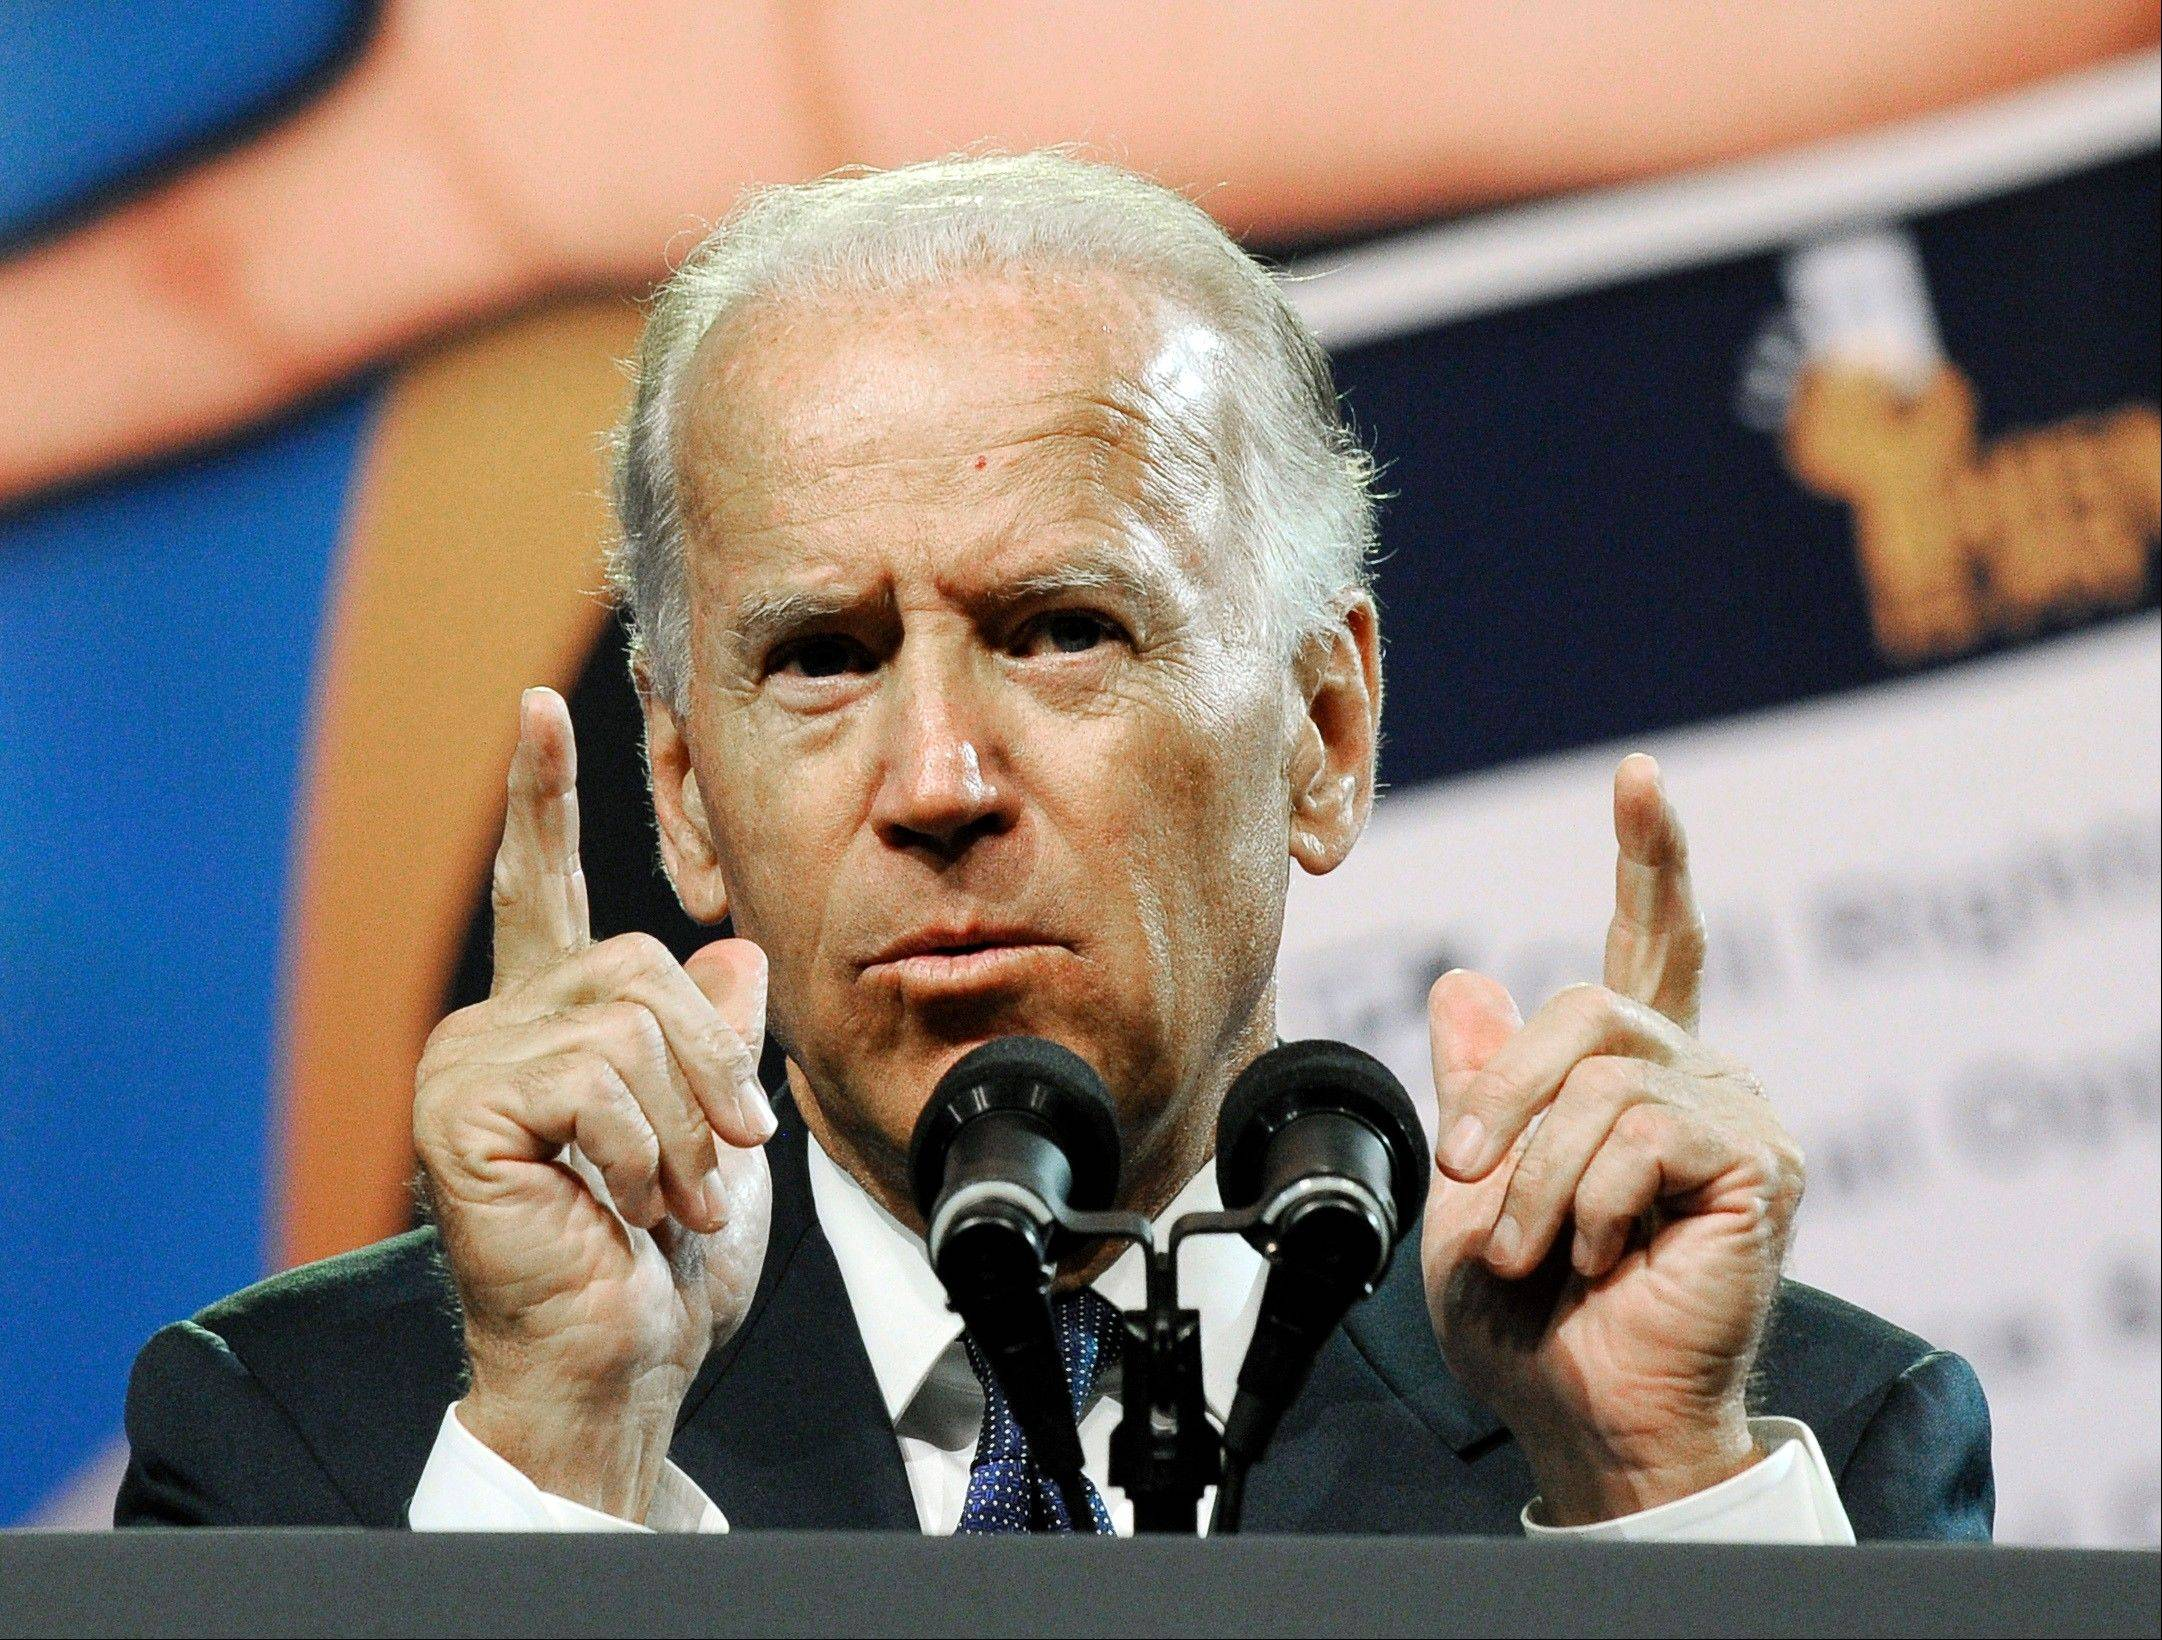 Profile: Biden a regular and not-so-regular Joe